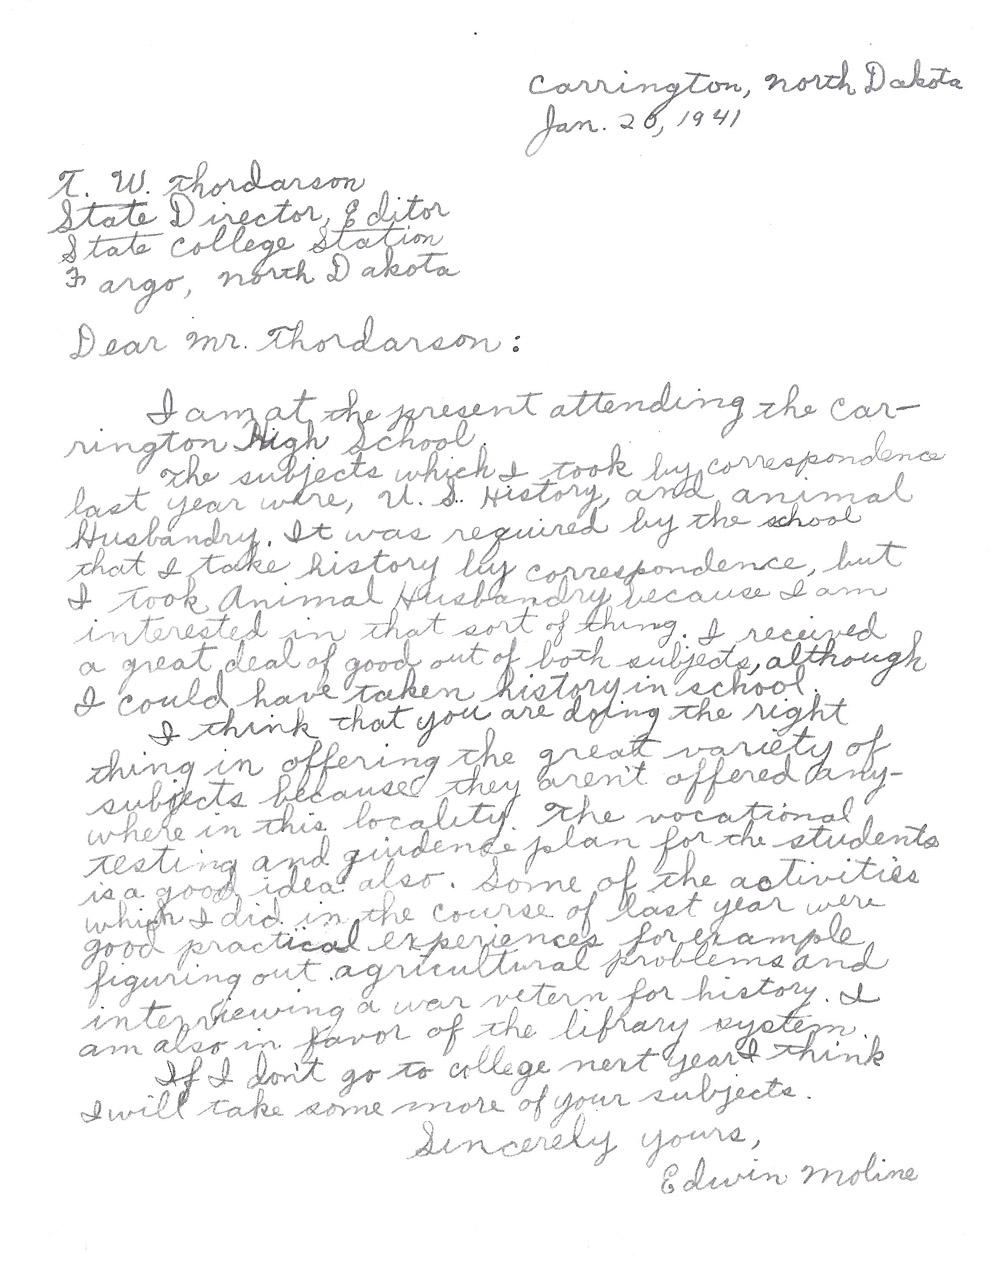 Letters to Correspondence School. These letters were written by four correspondence students and one school administrator. The letters show how important the correspondence school was to students who needed courses their school did not offer or those who had not had opportunity to finish high school. Mr. Fladseth, principal of Horace School, appreciated the variety of courses that his small school could not possibly offer.